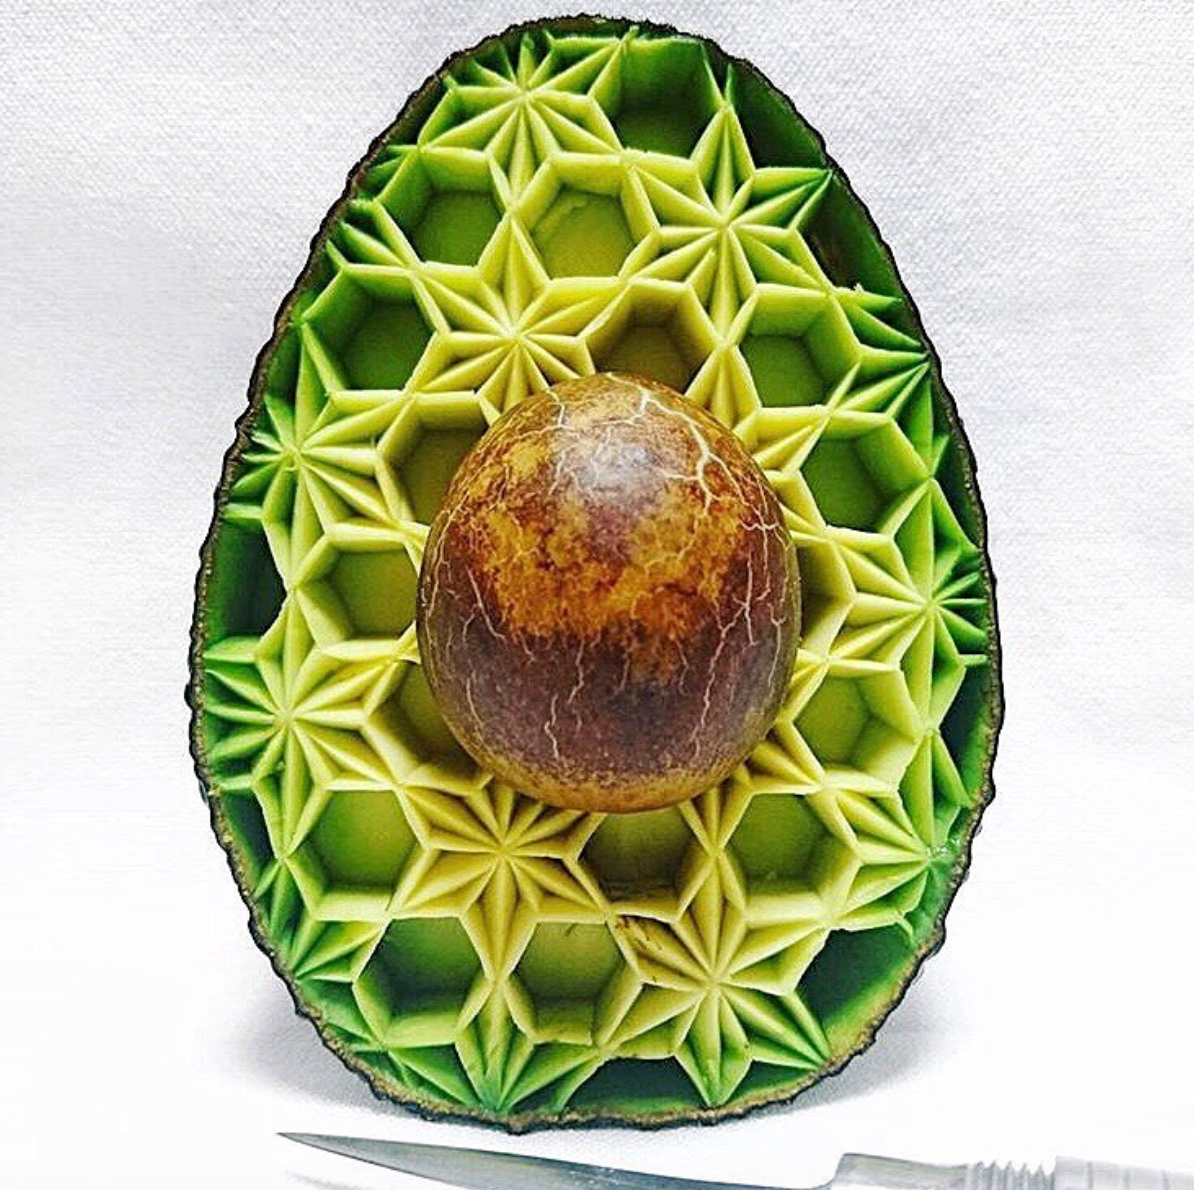 Introducing Avocado Art On National Avocado Day - YEW!